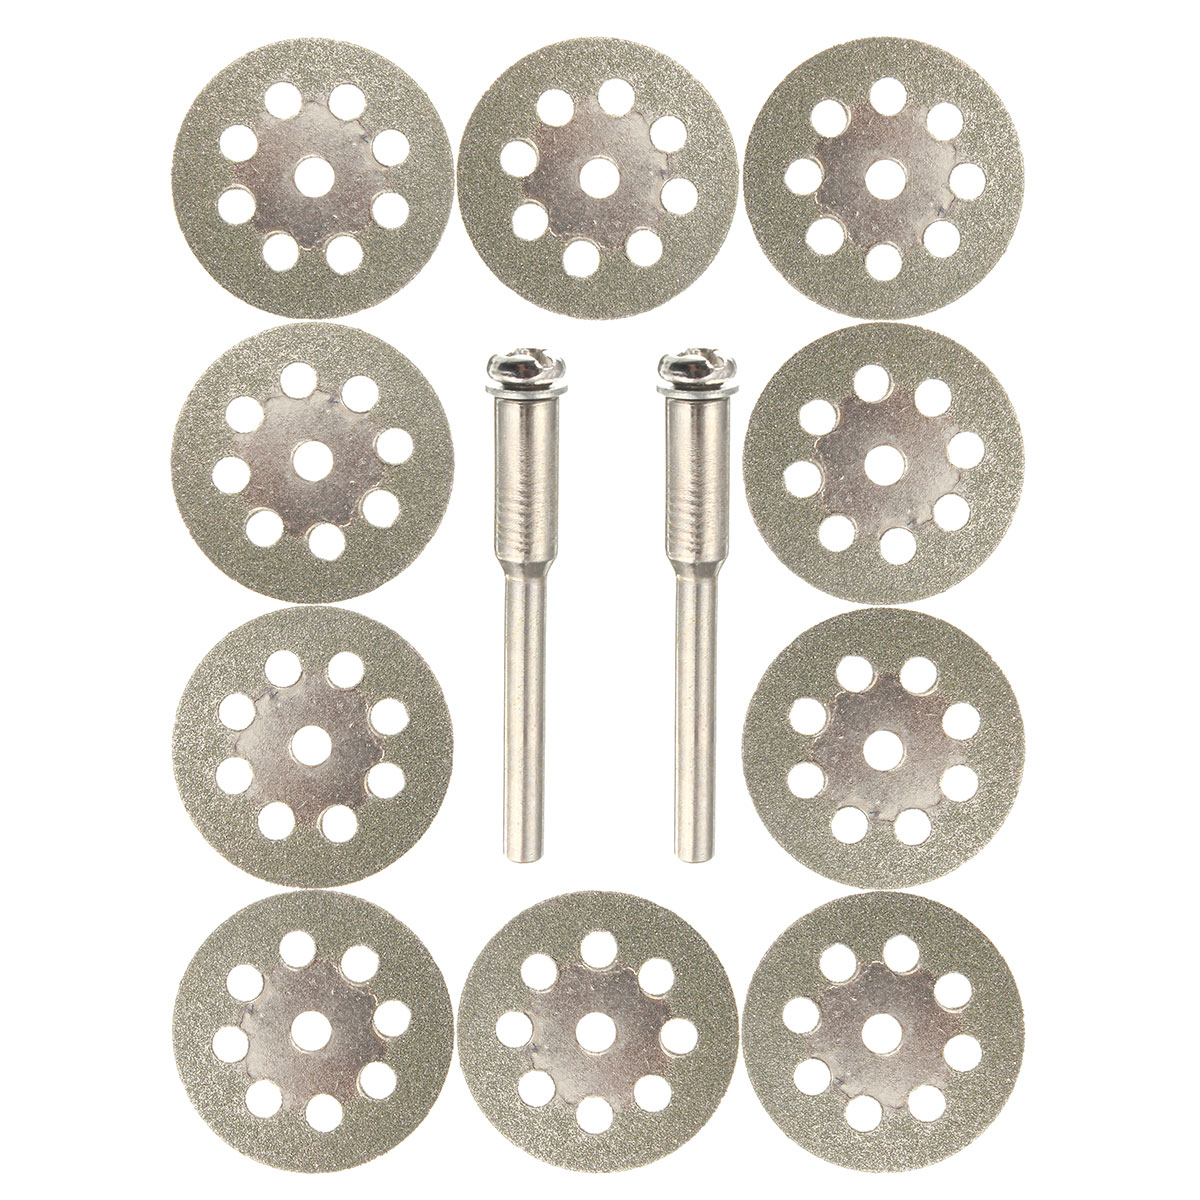 10pcs 22mm Diamond Coated Saw Blade Cutting Discs Tool with 2pcs Mandrel for Dremel